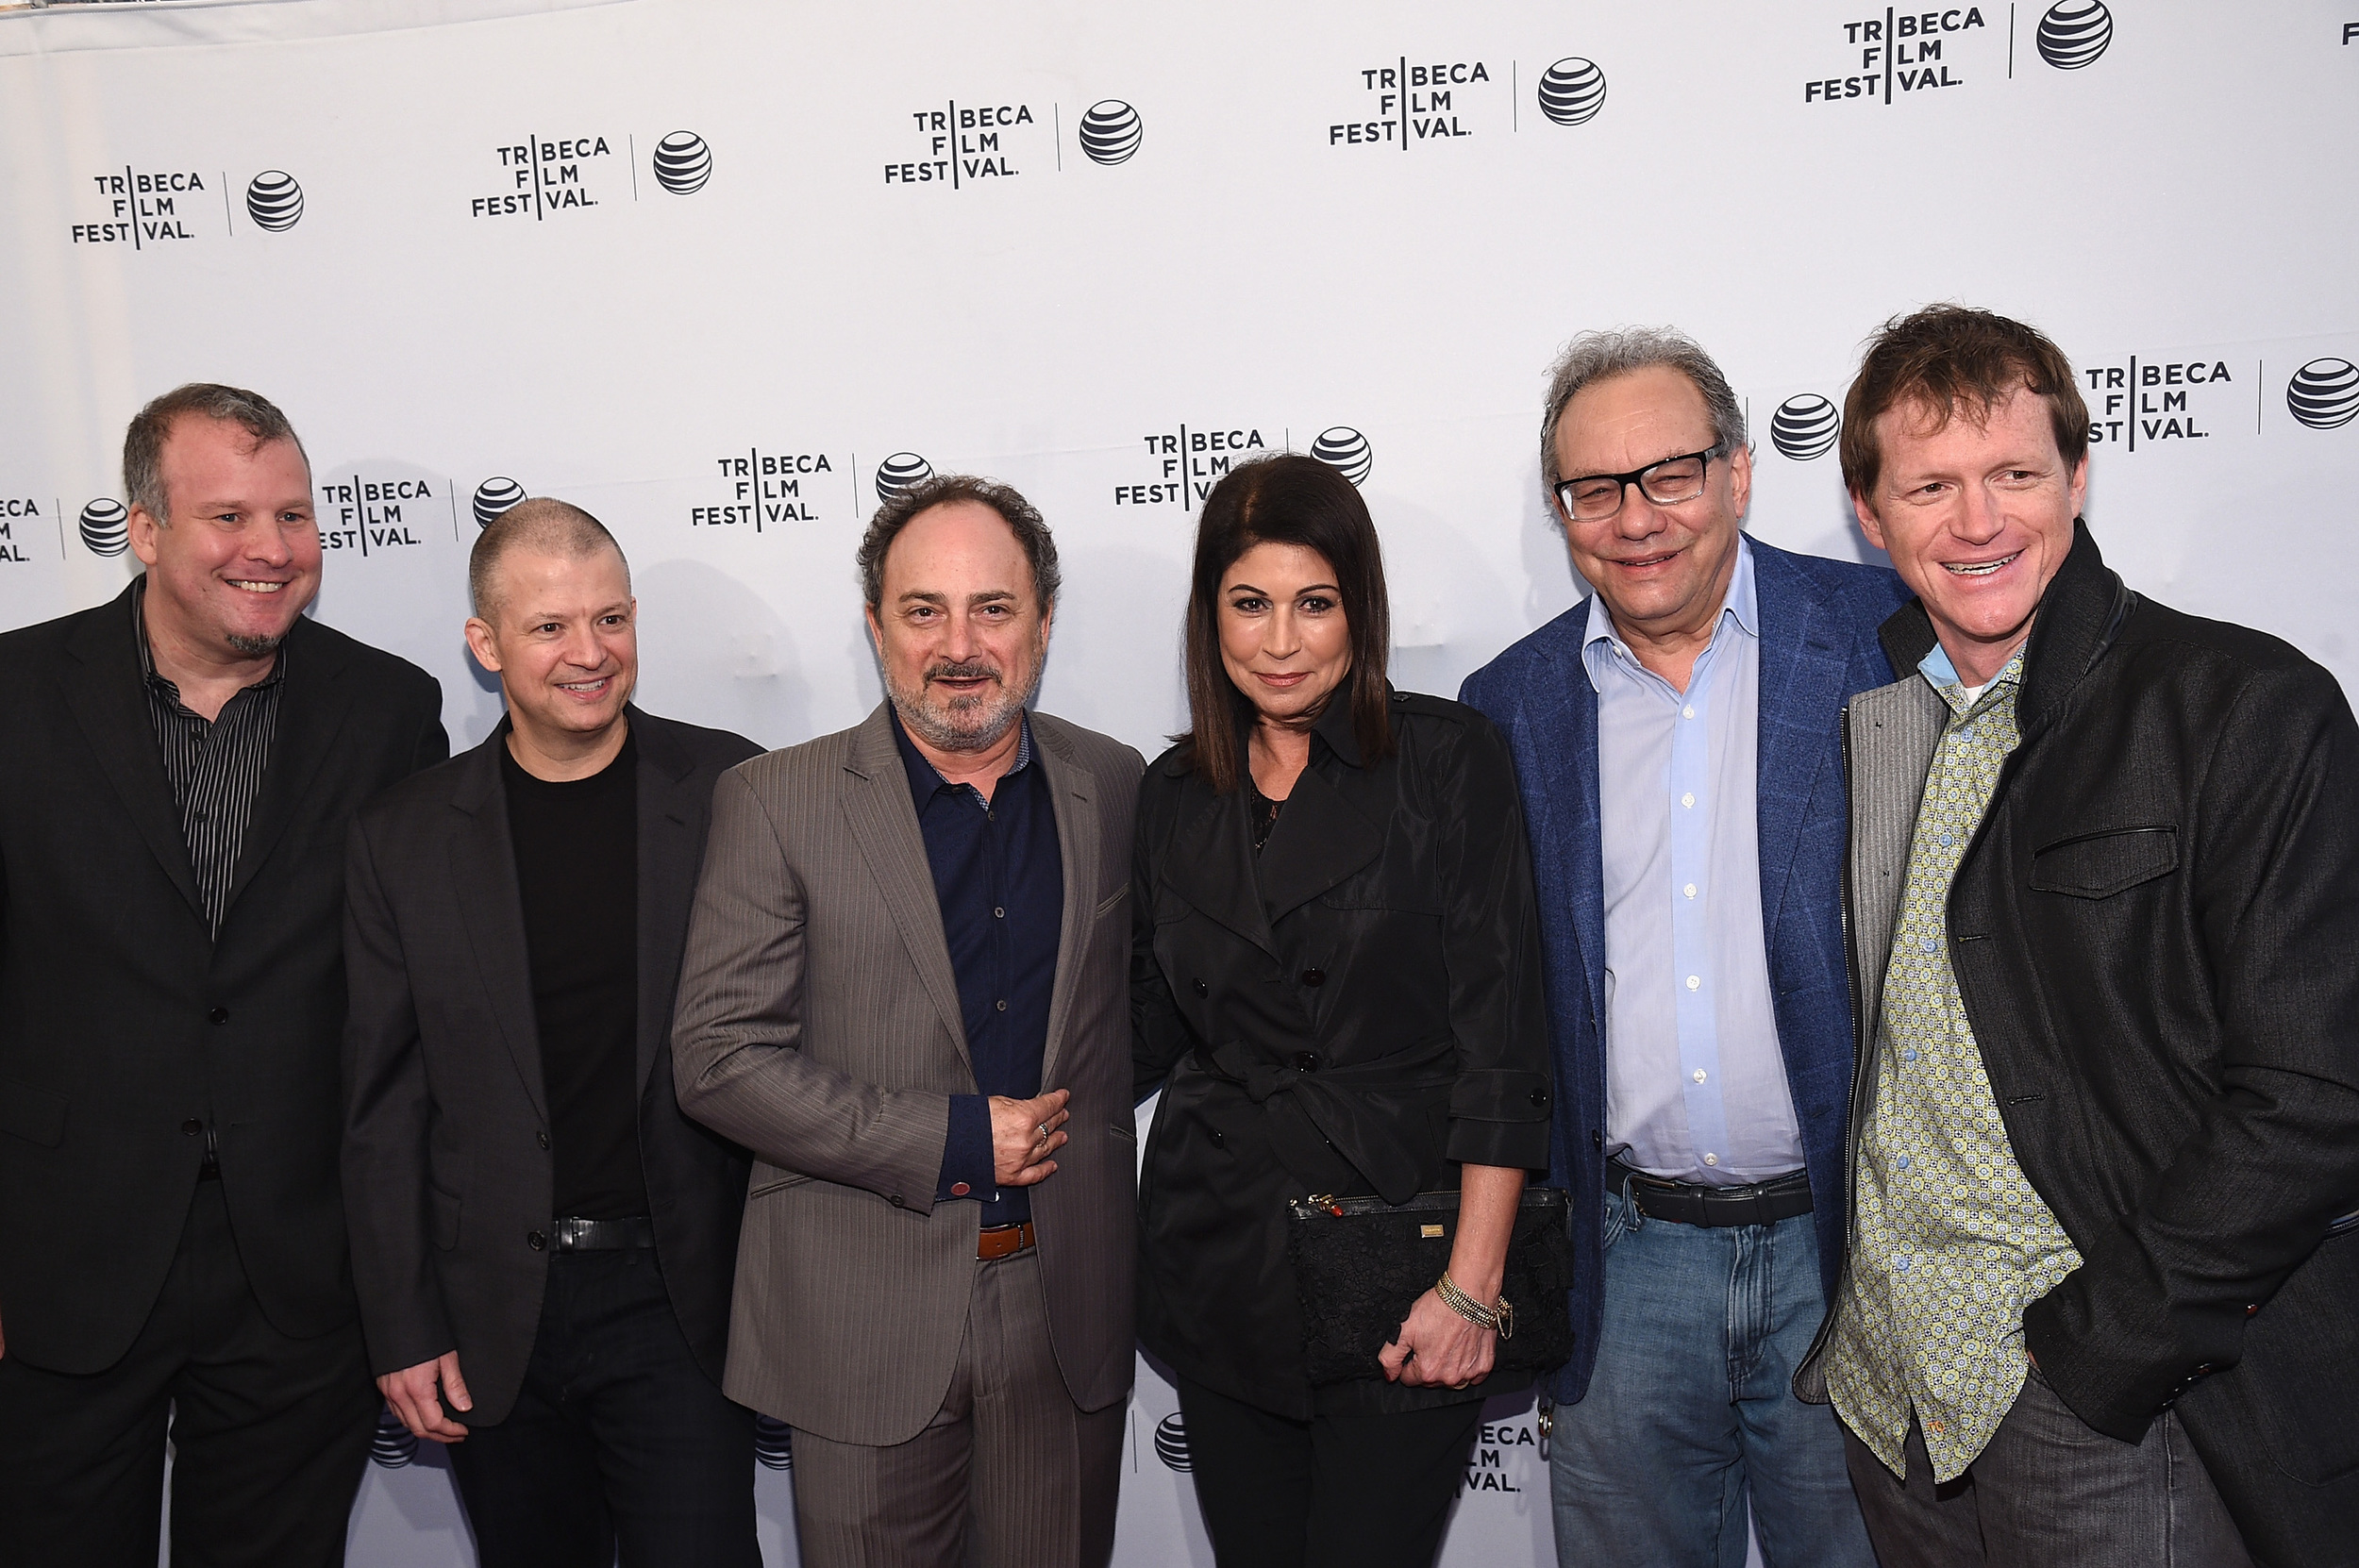 NEW YORK, NY - APRIL 22: (L-R): Gregory Segal, Jim Norton, Kevin Pollak, Caroline Hirsch, Lewis Black and Burton Ritchie     (Photo by Bryan Bedder/Getty Images for American Express)